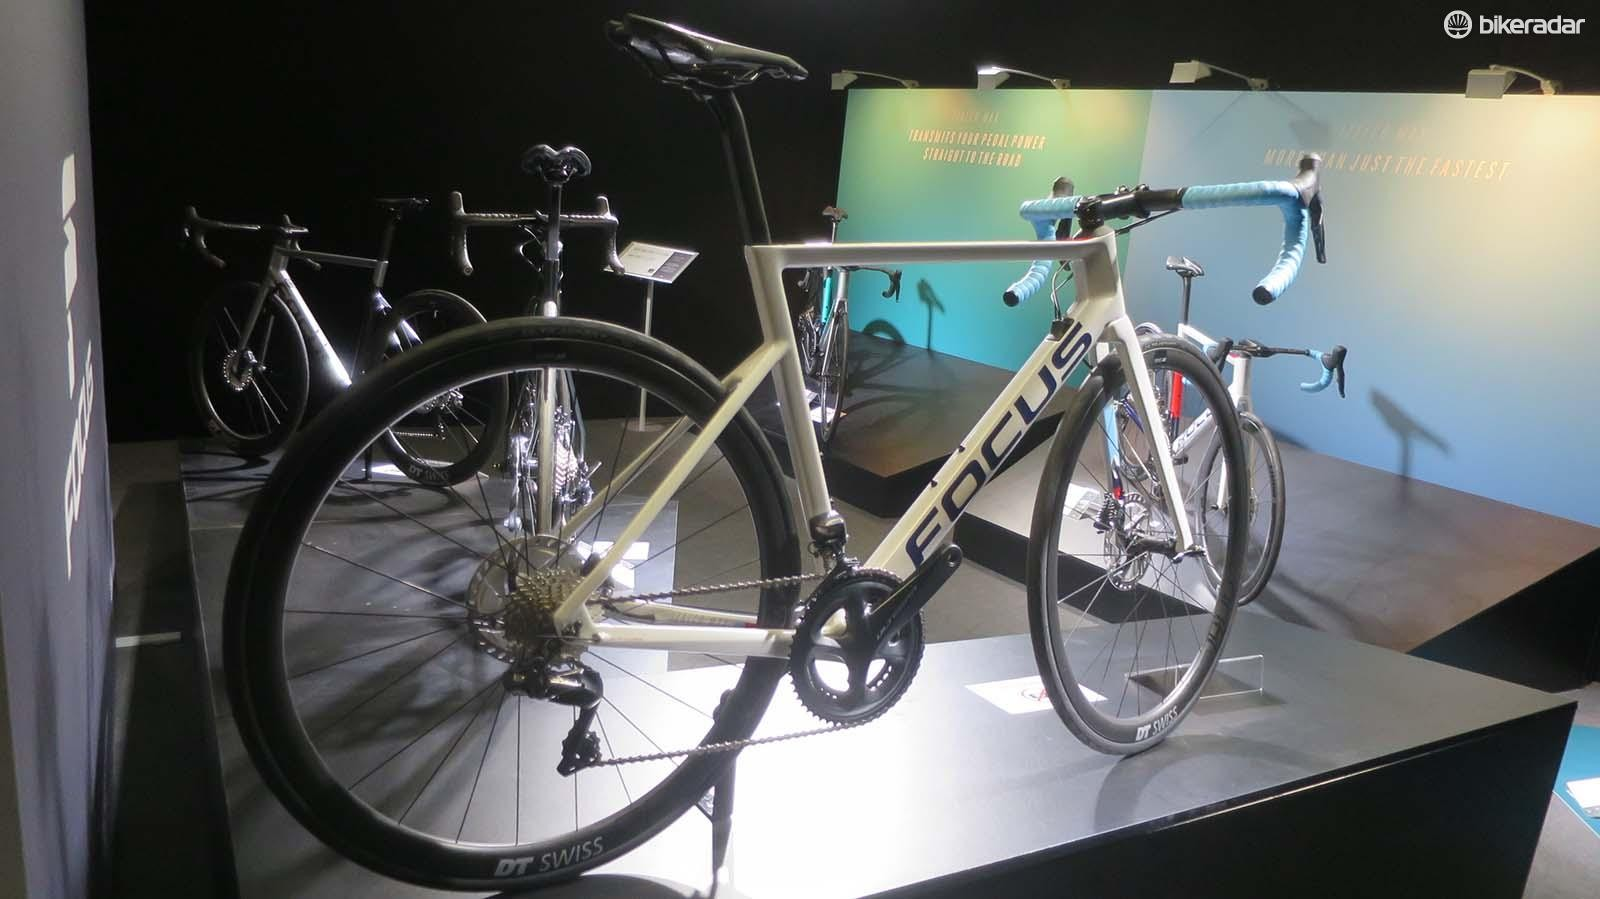 The £4.499 8.9 Max comes fitted with Shimano Ultegra Di2